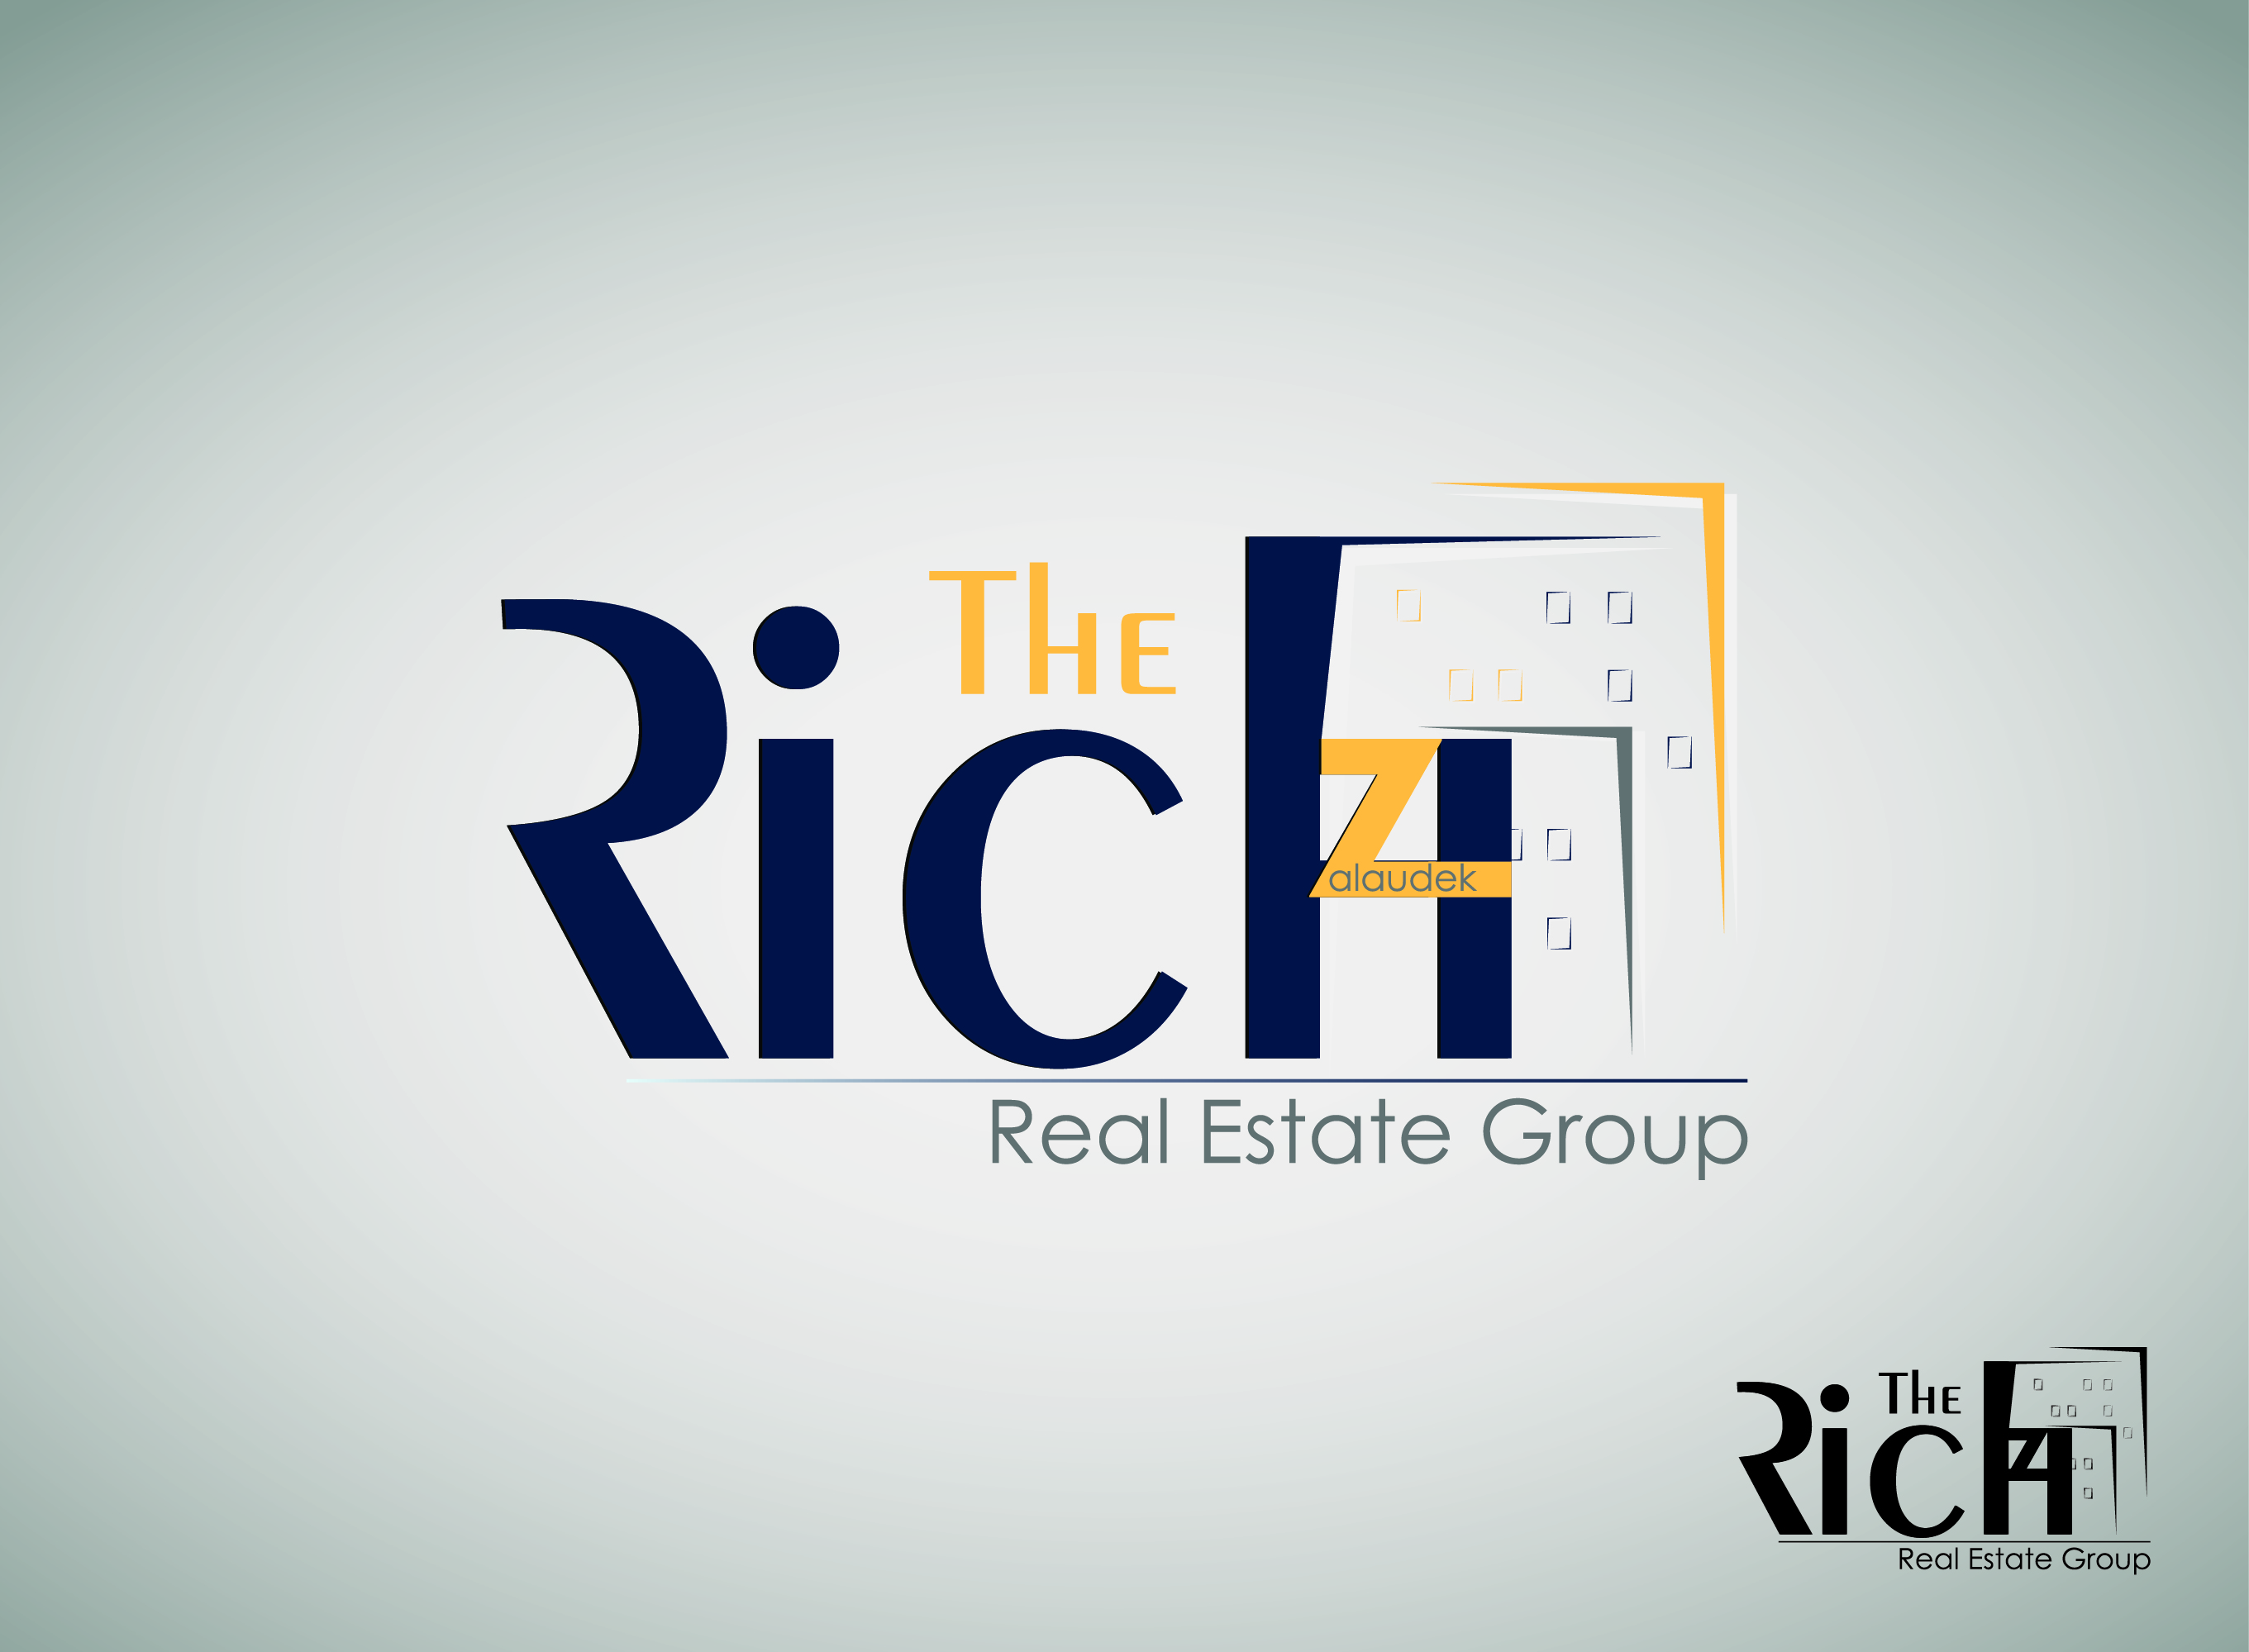 Logo Design by nTia - Entry No. 107 in the Logo Design Contest The Rich Z. Real Estate Group Logo Design.